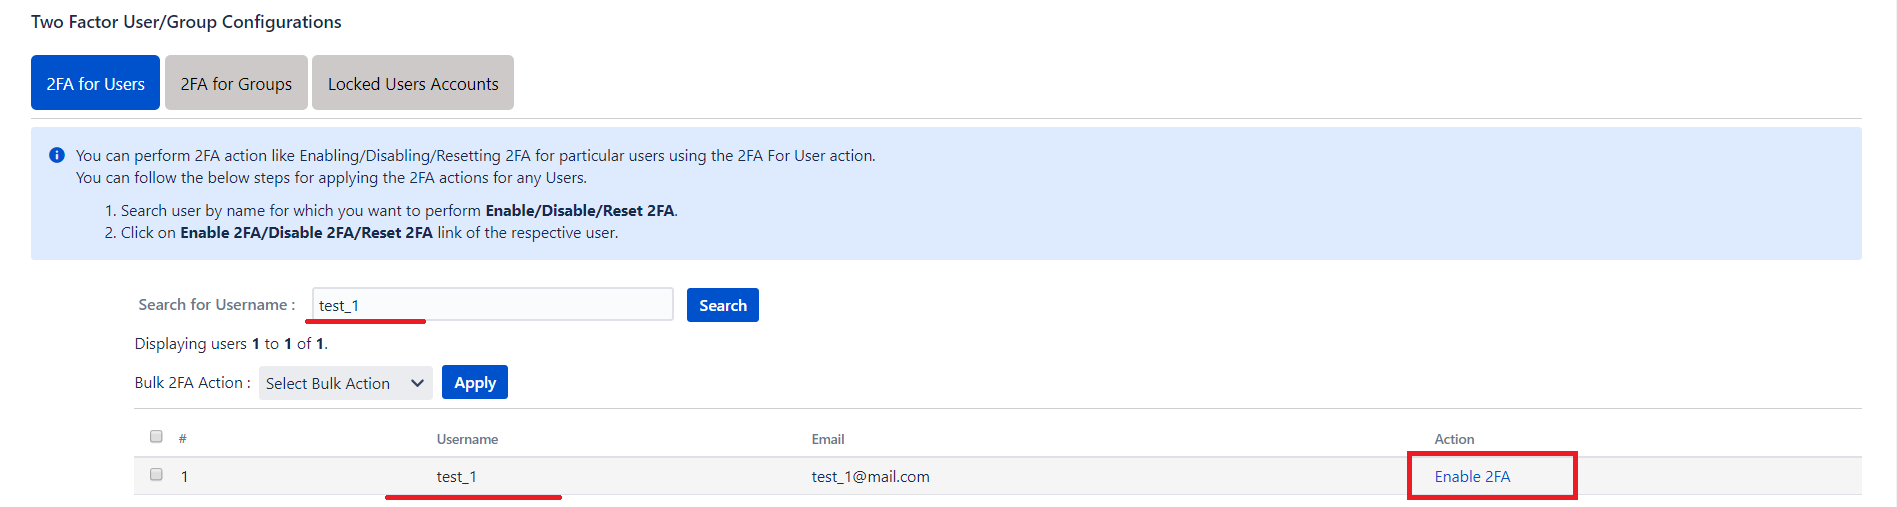 Two factor Authentication (2FA) for Jira